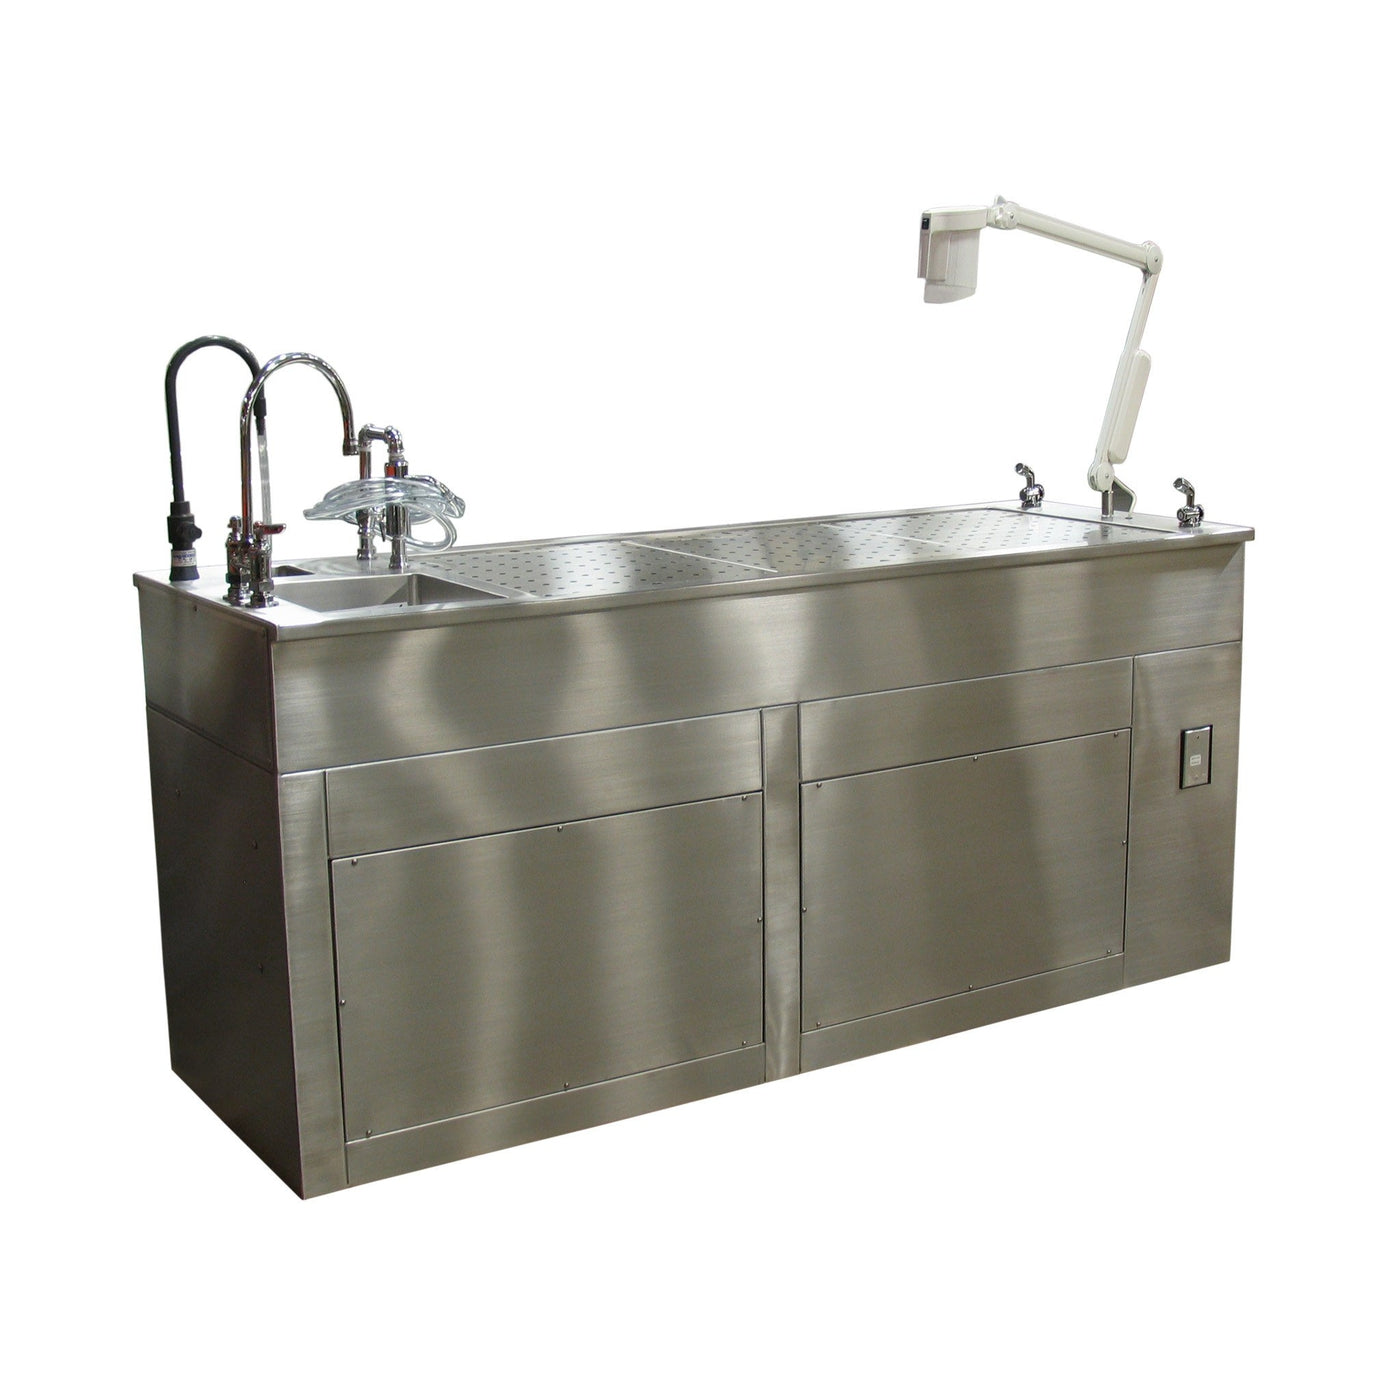 Custom Workstation-Anatomy Dissection Tables-Mortech Manufacturing Company Inc. Quality Stainless Steel Autopsy, Morgue, Funeral Home, Necropsy, Veterinary / Anatomy, Dissection Equipment and Accessories